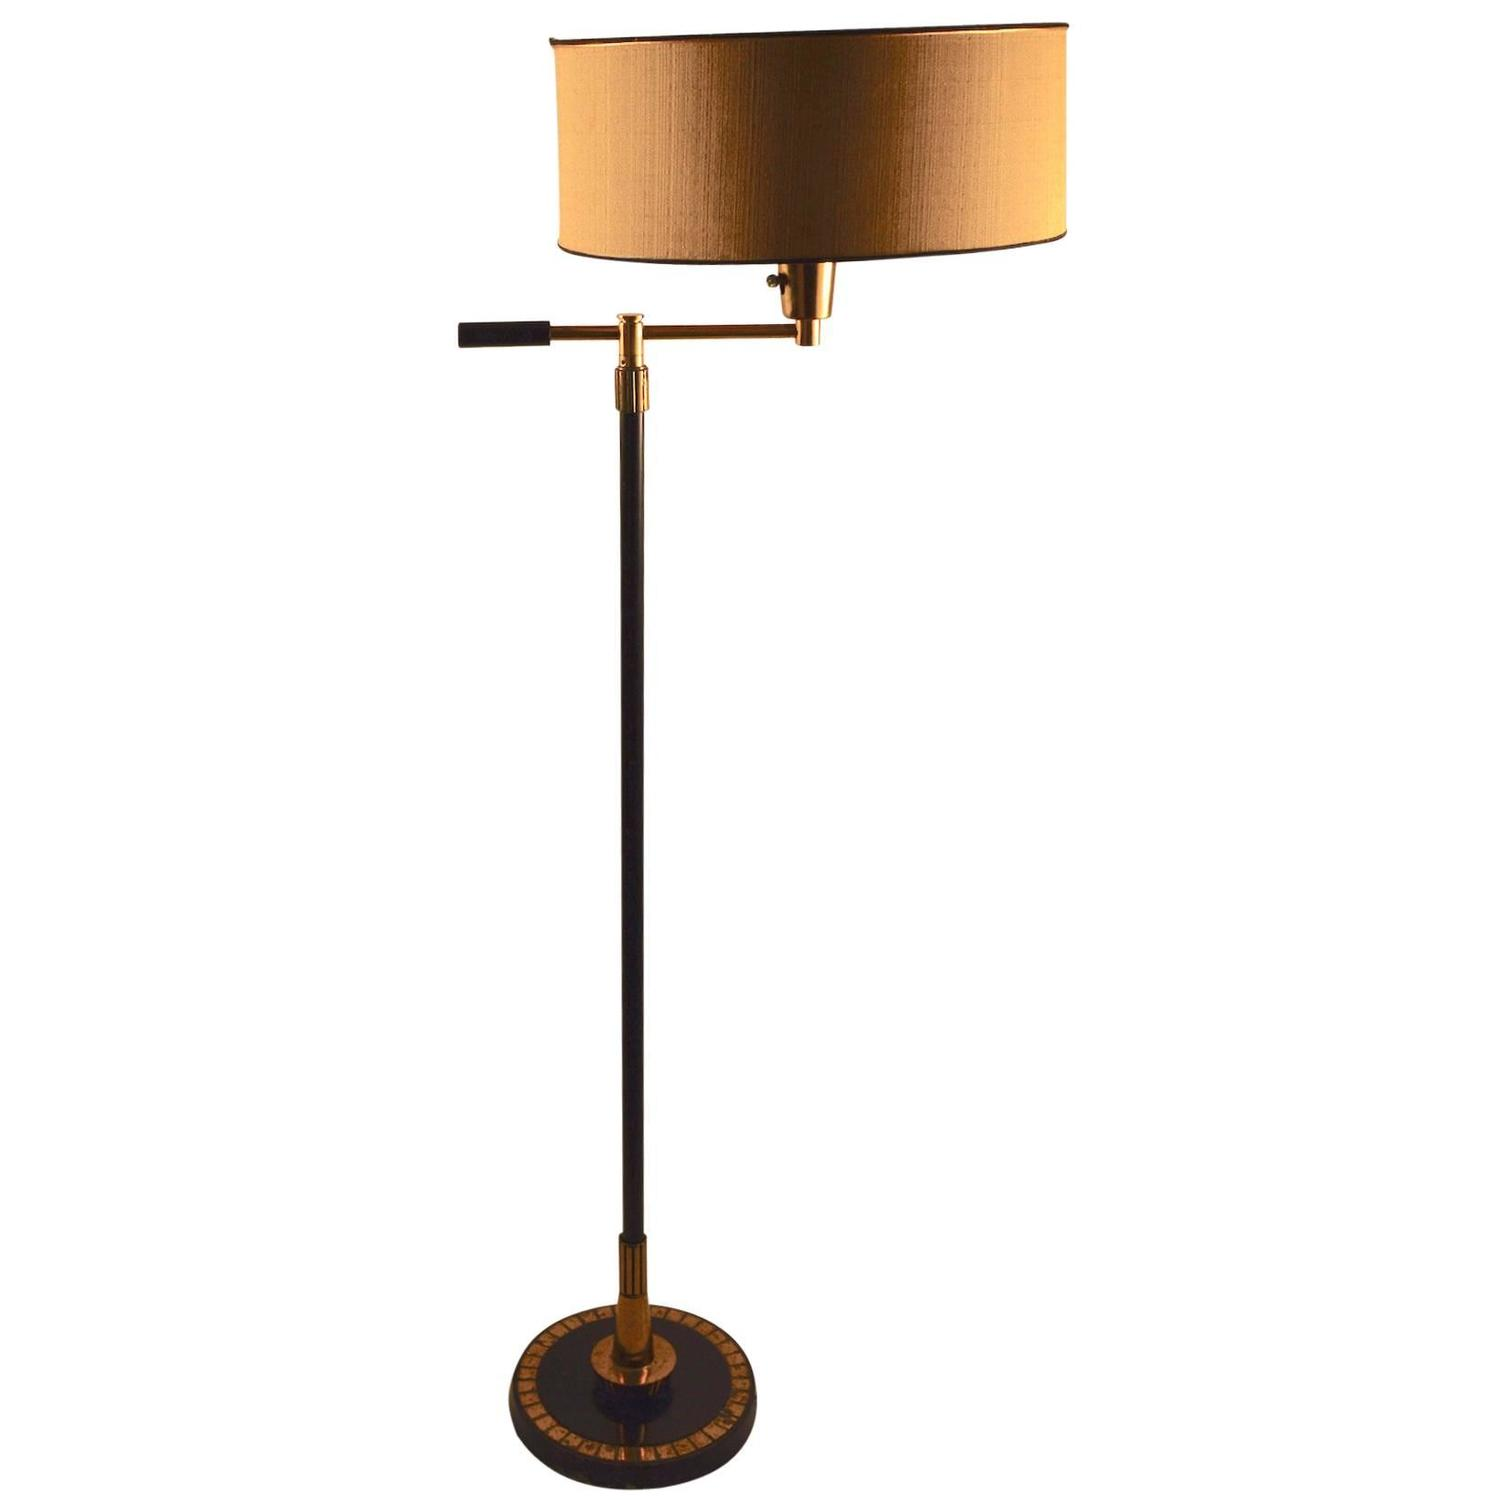 mid century floor lamp by stiffel for sale at 1stdibs. Black Bedroom Furniture Sets. Home Design Ideas